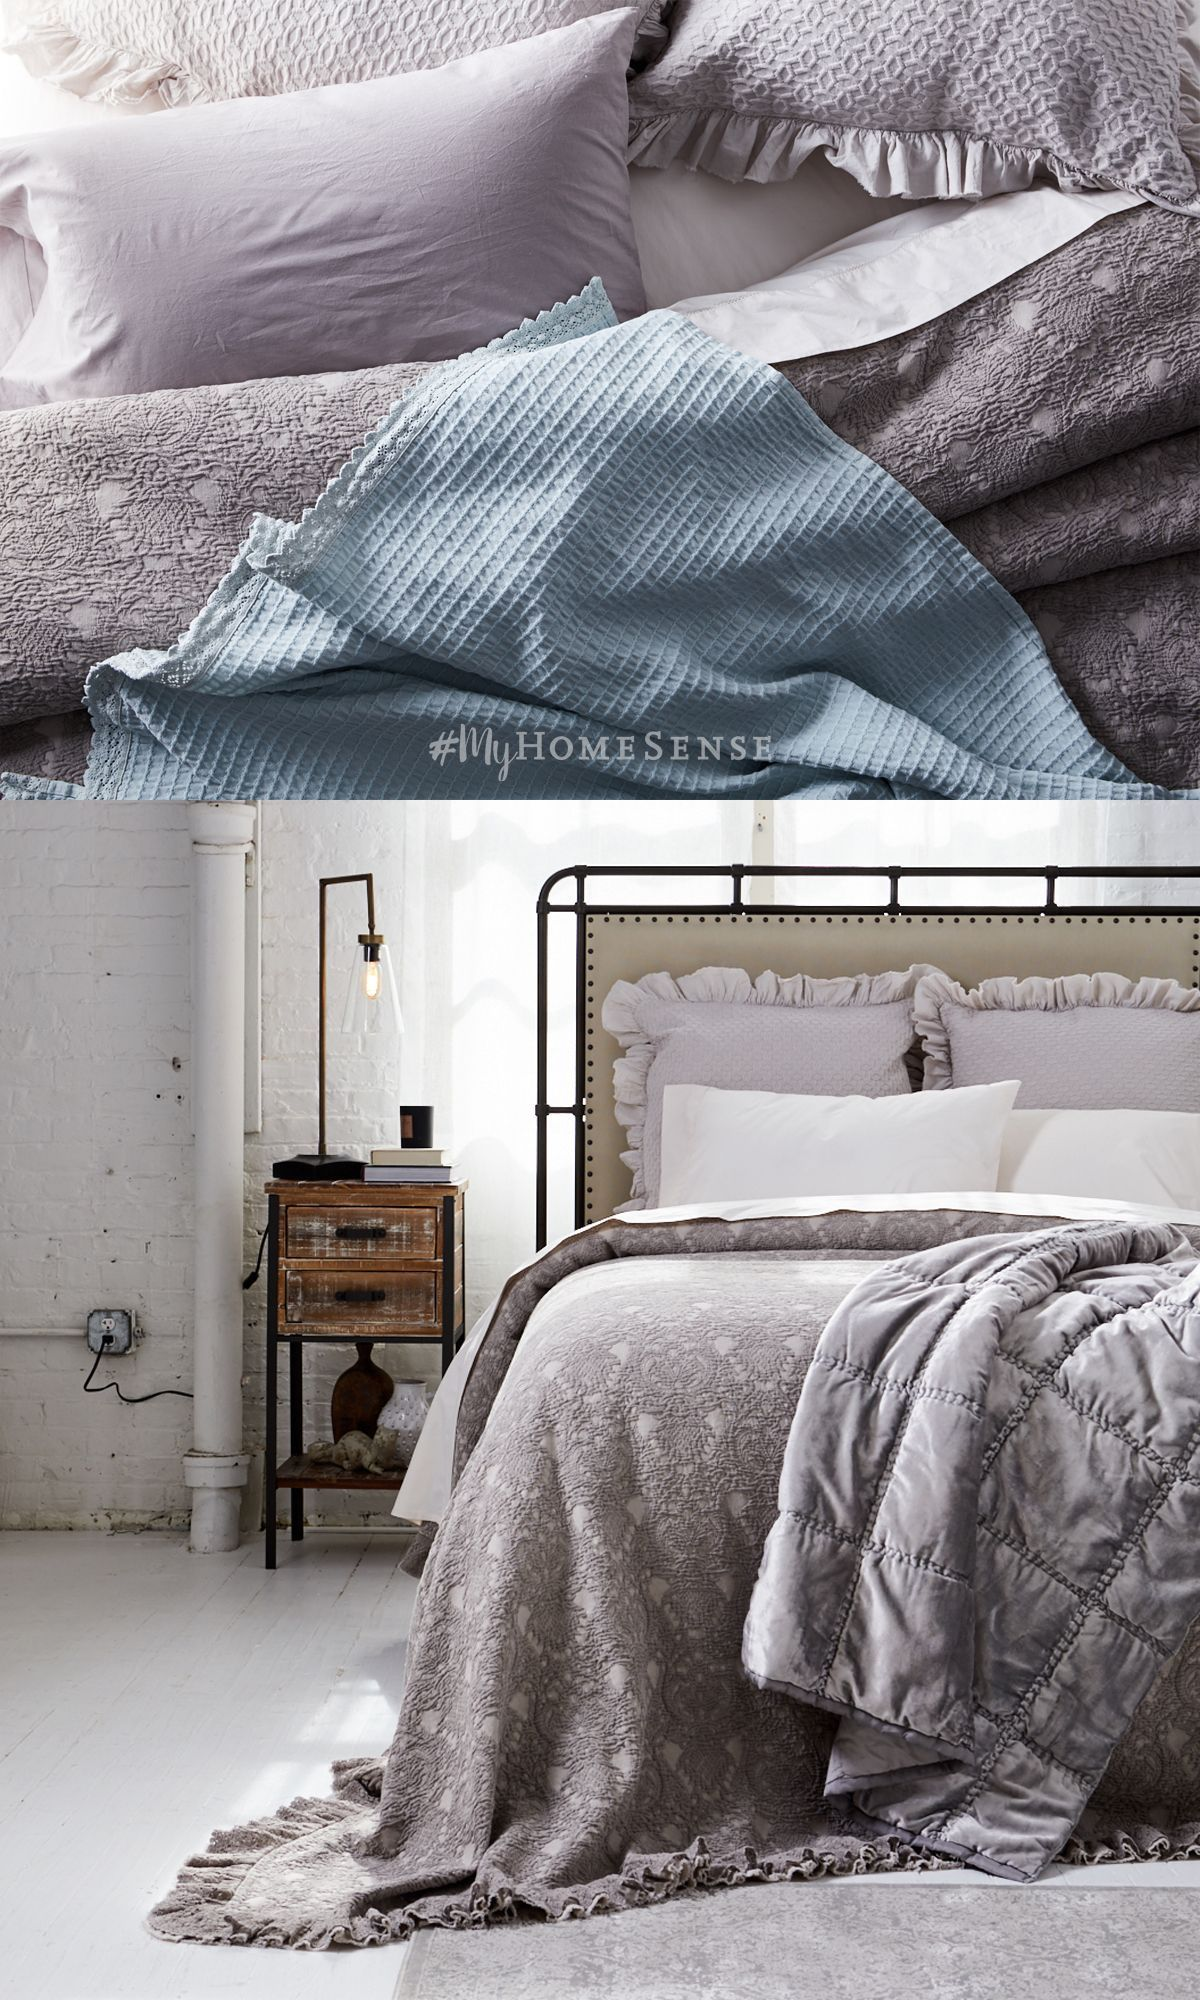 Soften up an industrial bedroom with cozy